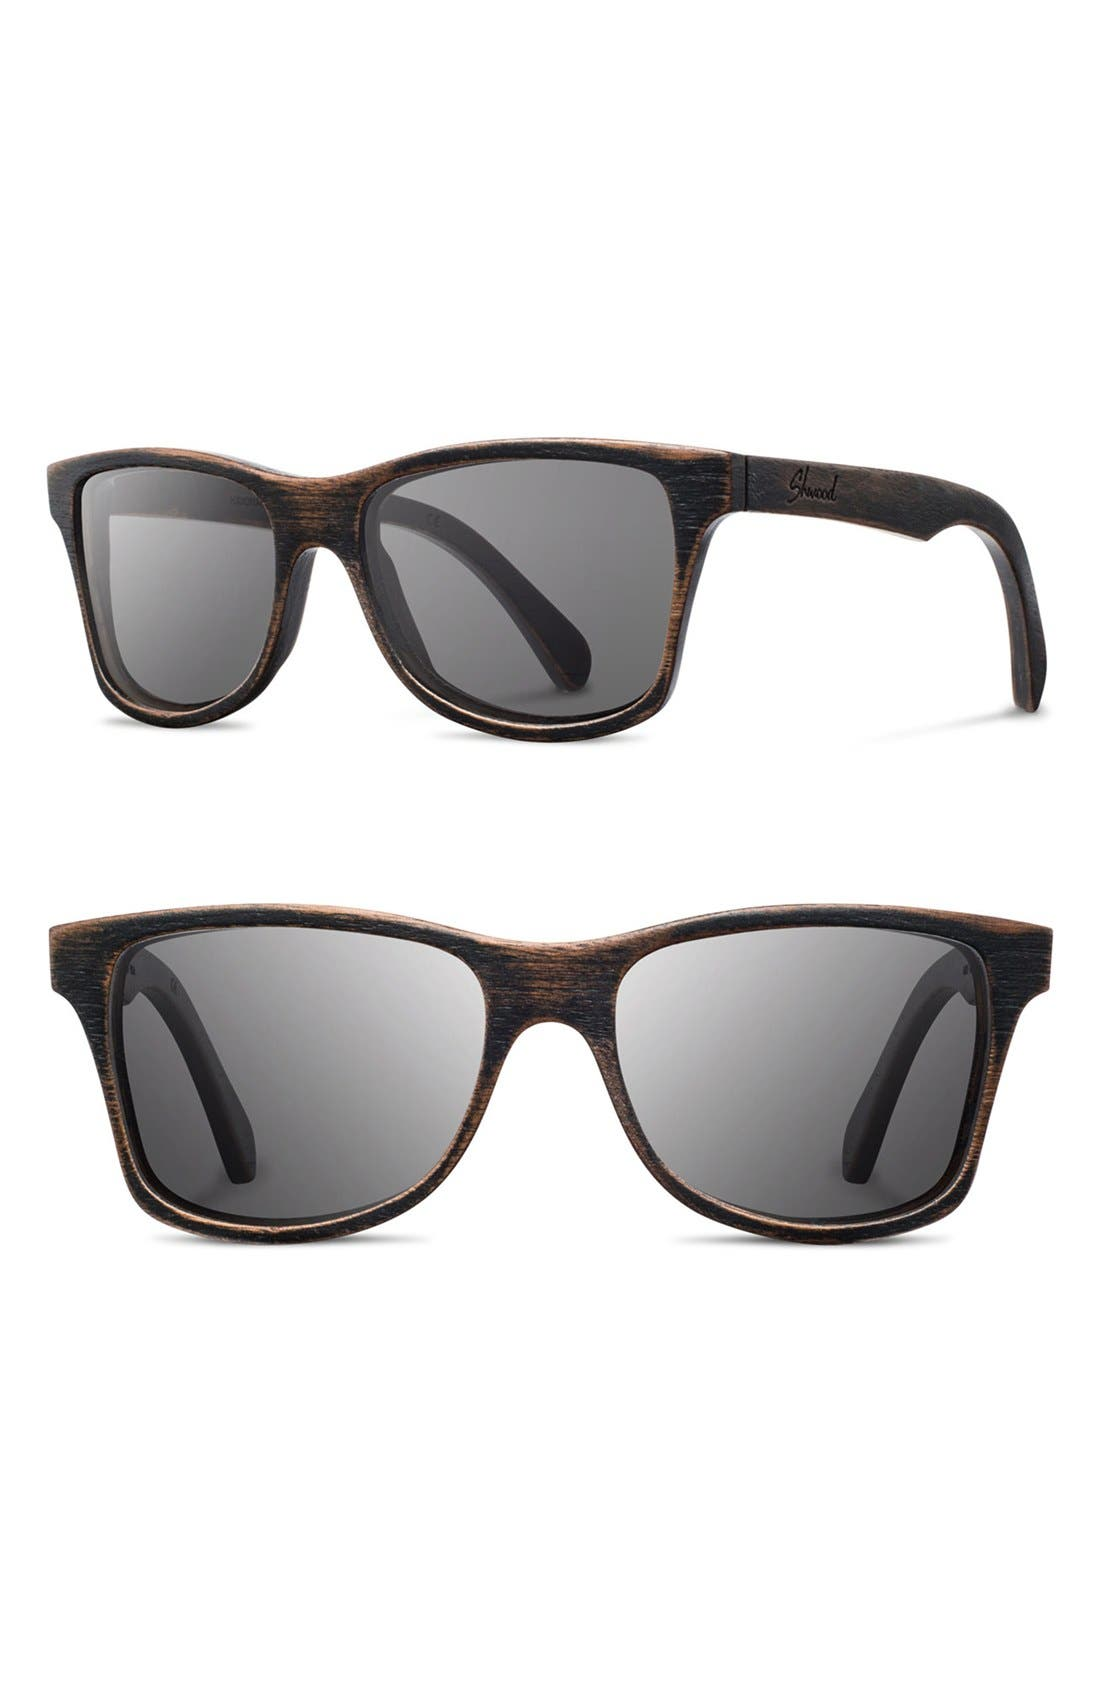 'Canby' 54mm Polarized Wood Sunglasses,                             Main thumbnail 1, color,                             002